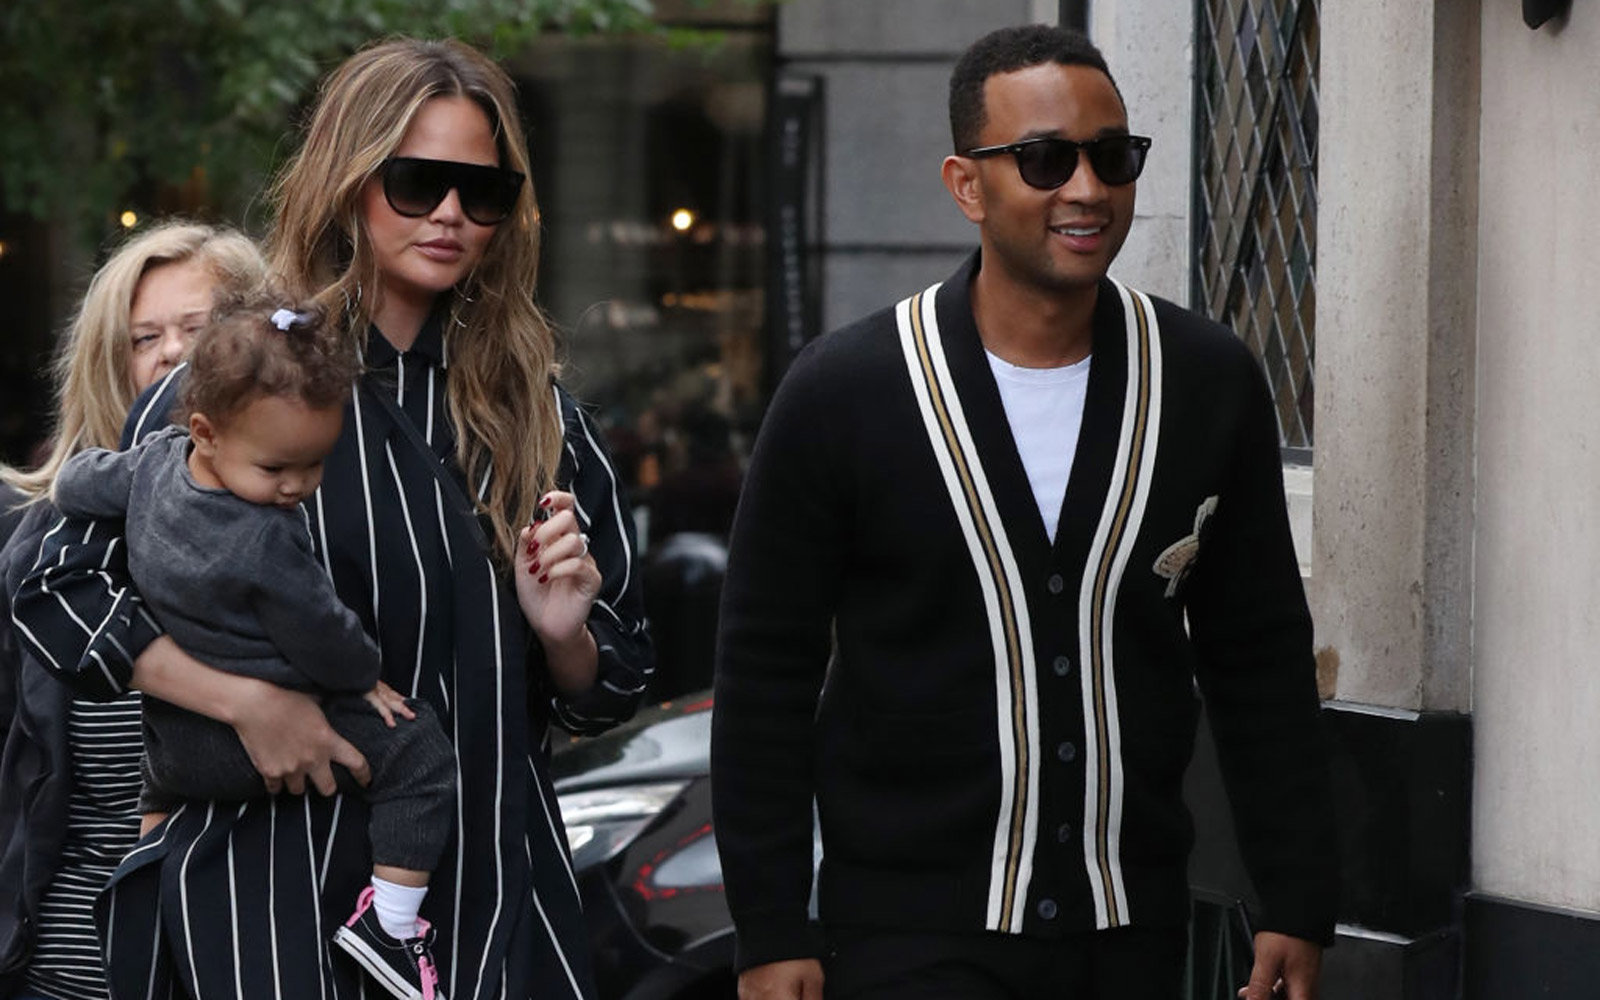 John Legend and Chrissy Teigen Sighting -  September 11, 2017